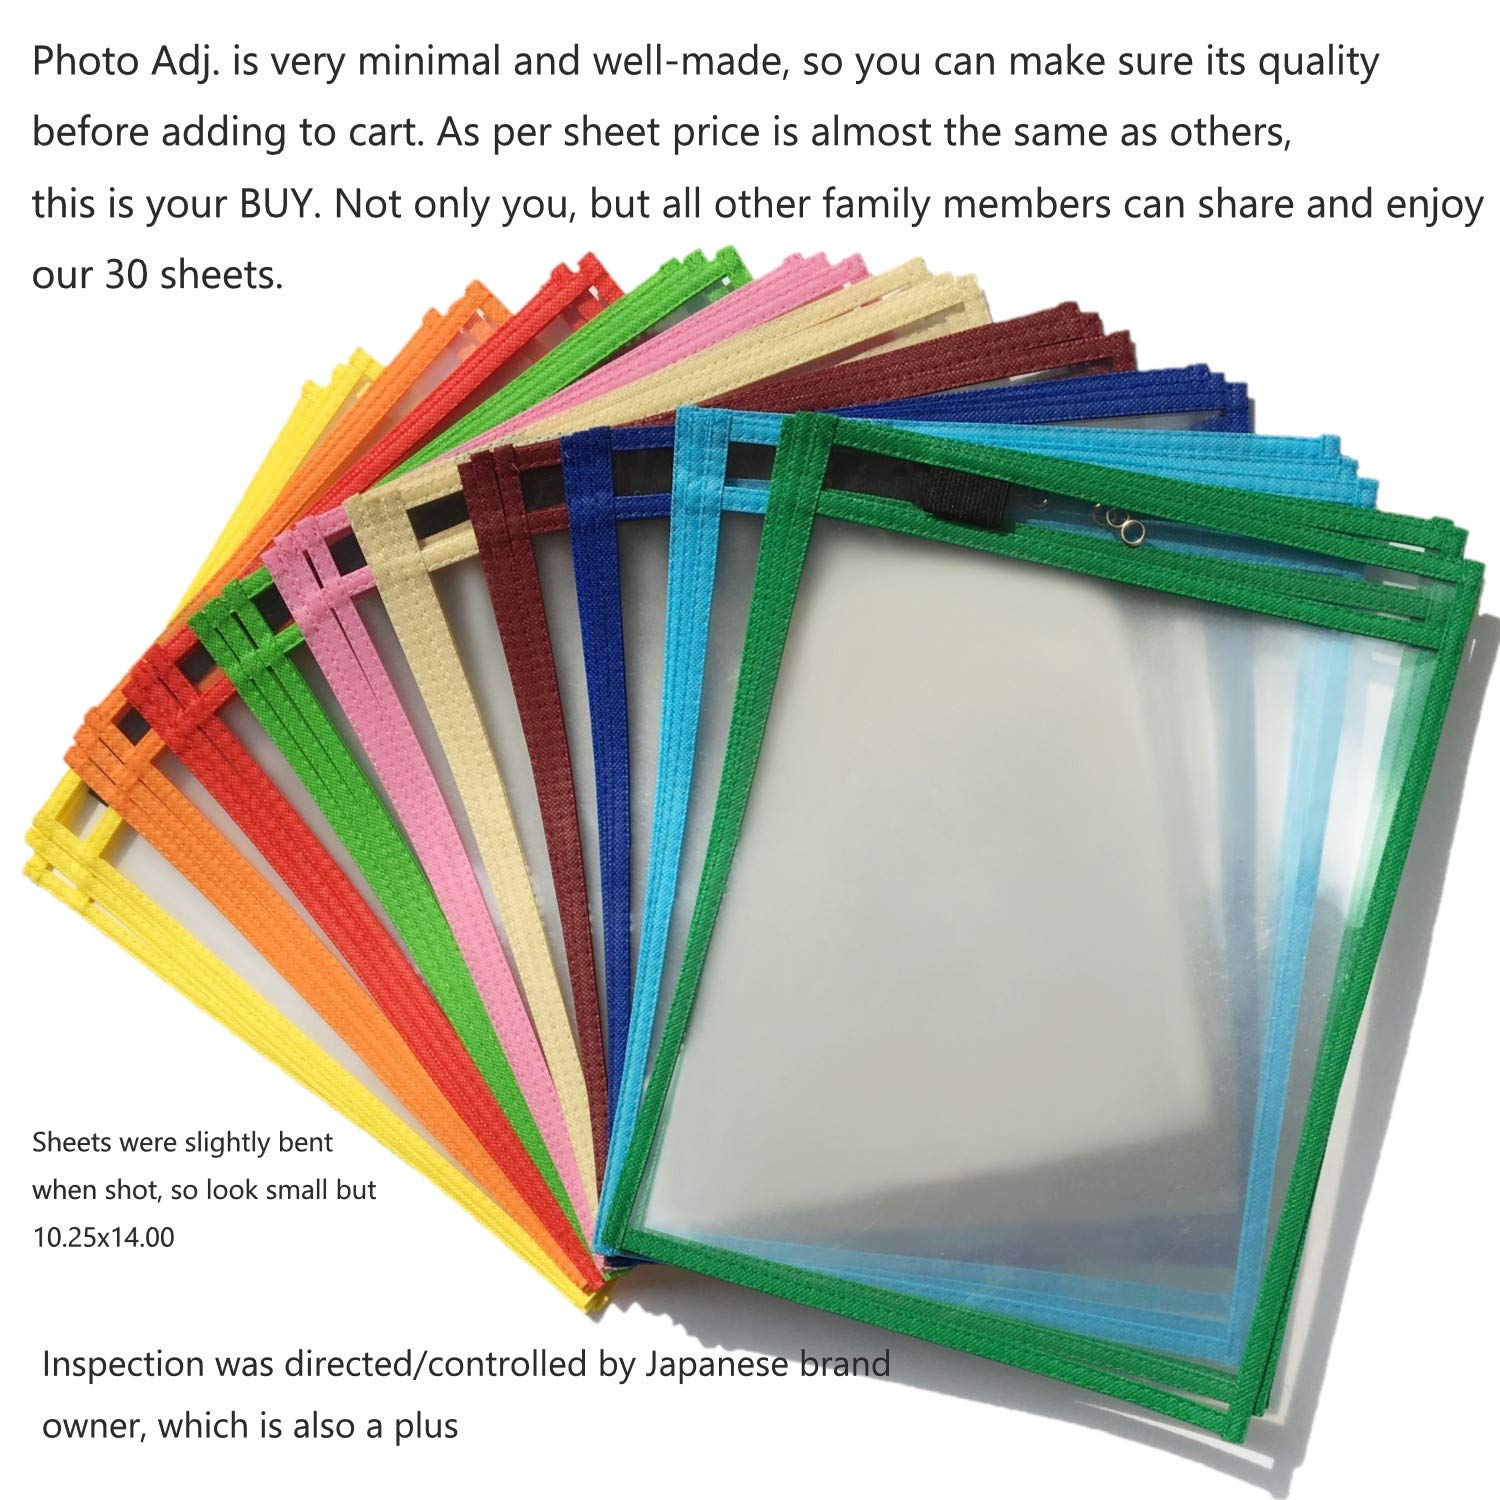 Office Organizer Max Use with Versatility 10 Colors 30 Pack Blue Novalis Multi-Purpose Dry Erase Pocket Sleeves School Supplies 10.25 x 14.00 in